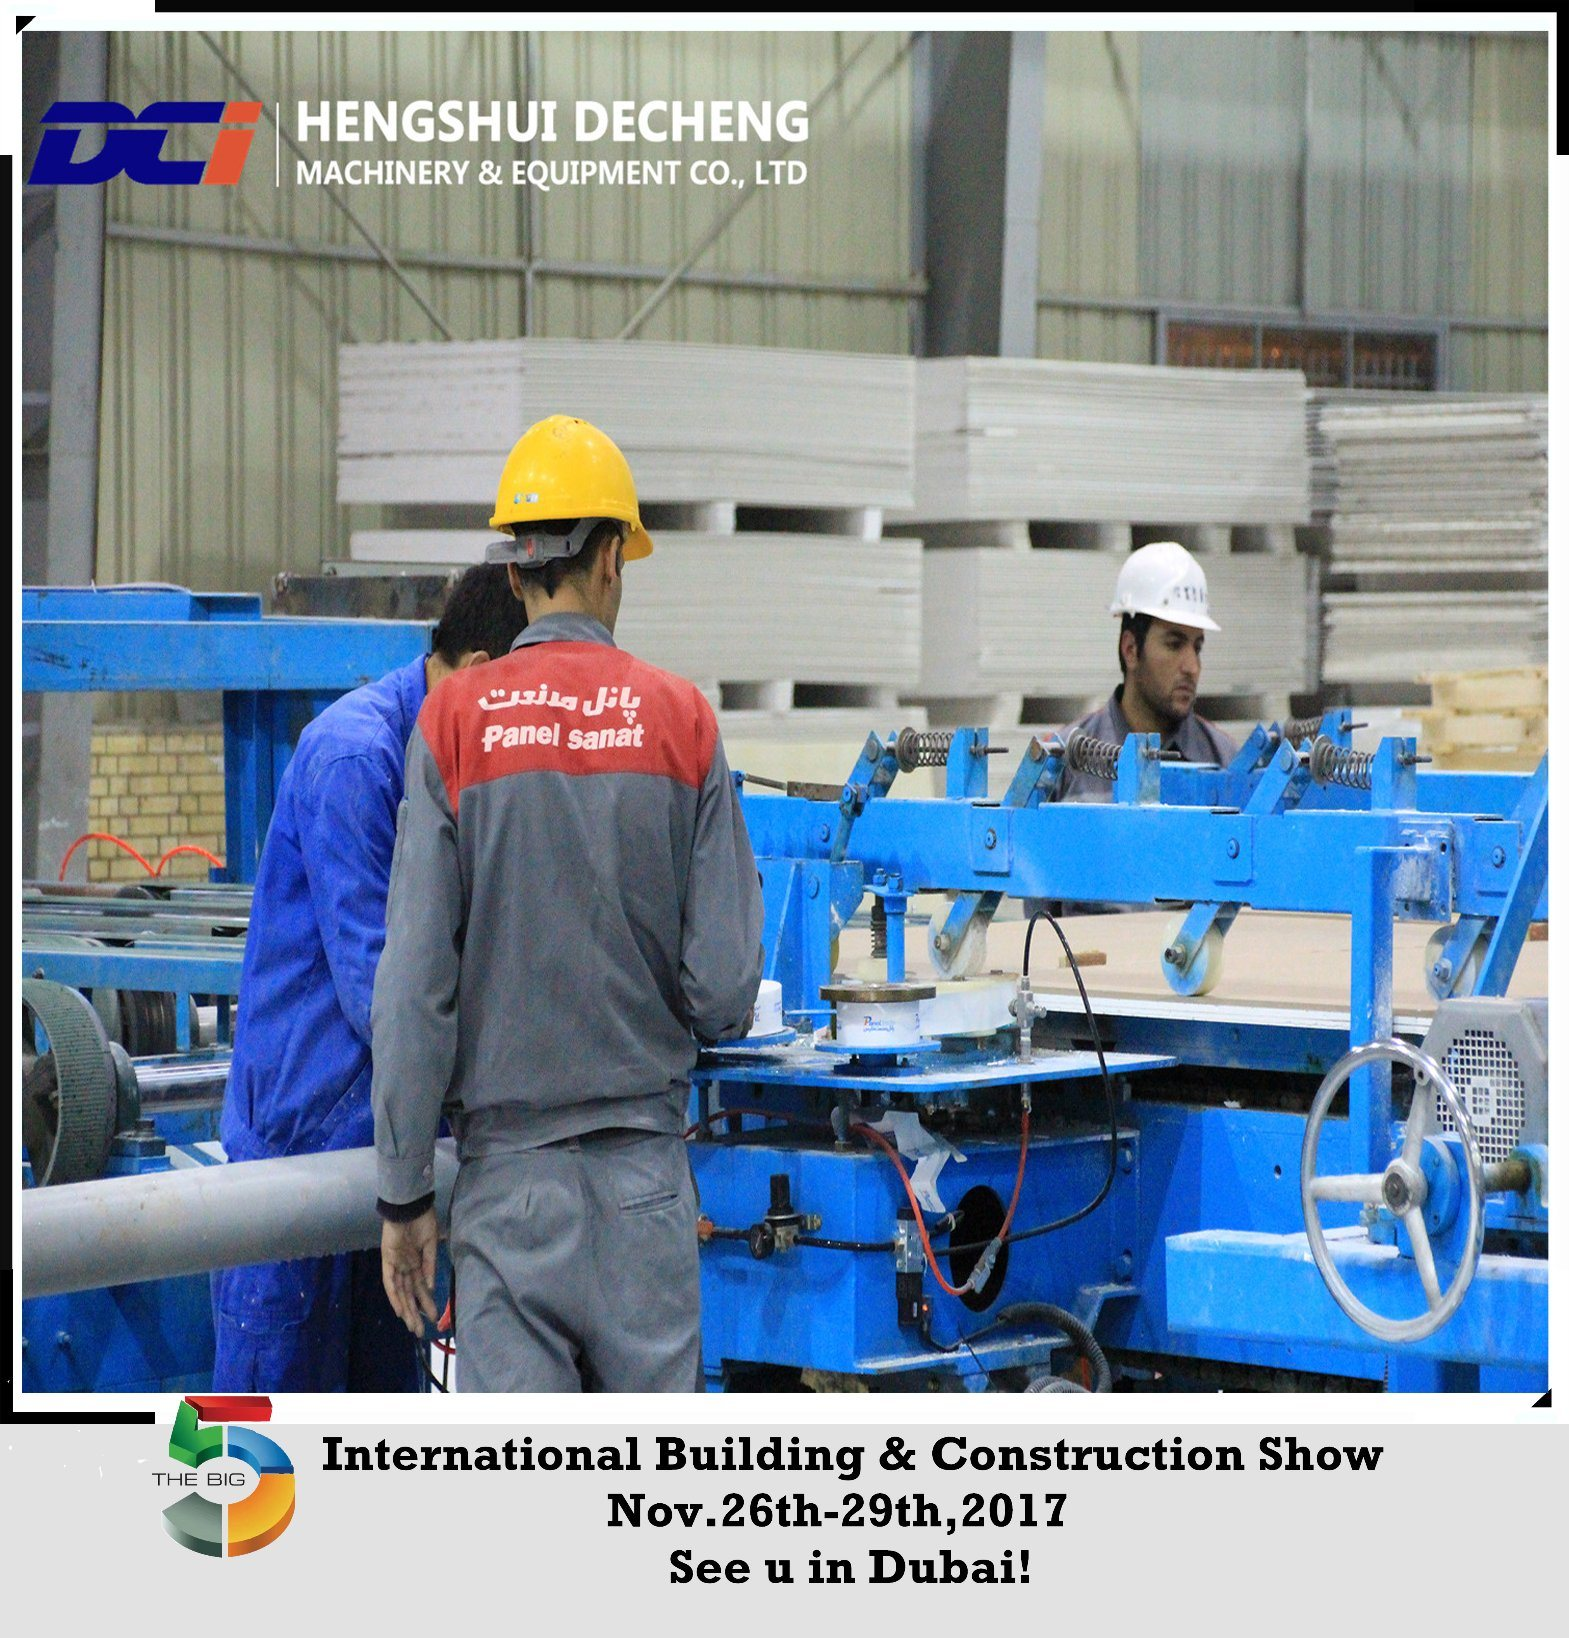 Production industry spare parts for light industry equipment